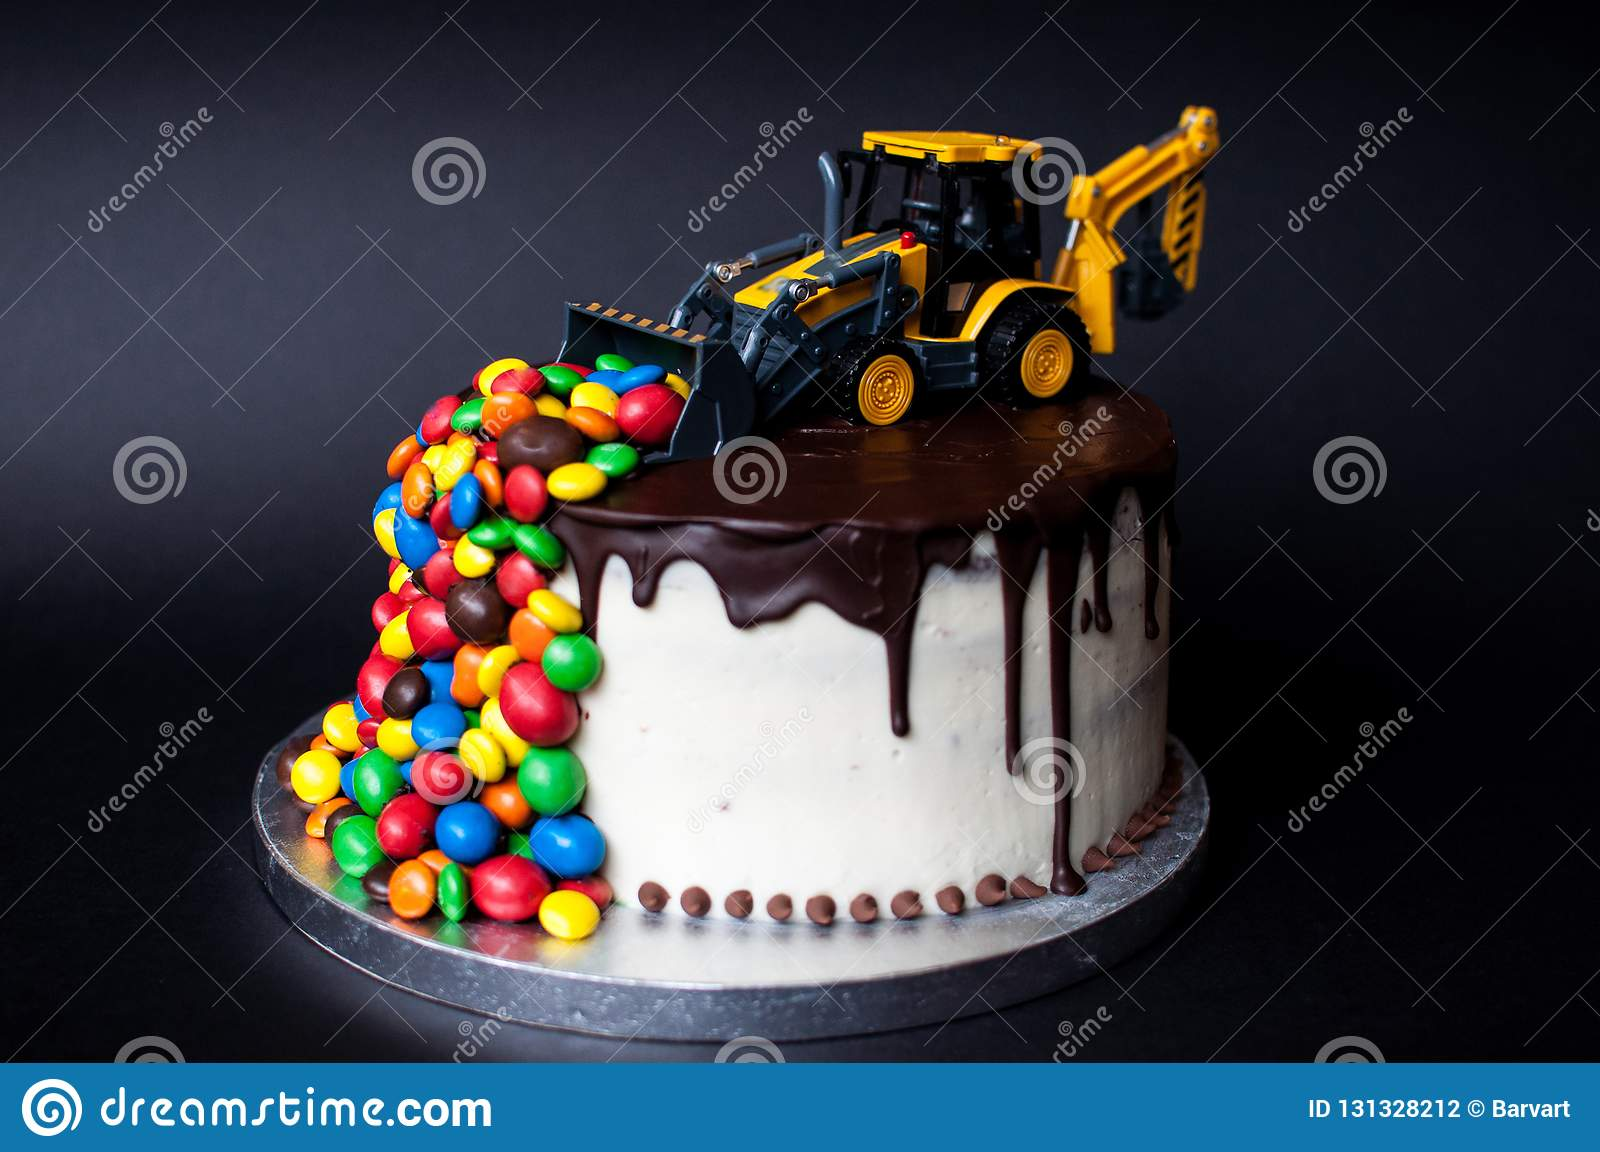 Tremendous Birthday Chocolate Cake With Tractor And Candy On Top Stock Photo Personalised Birthday Cards Beptaeletsinfo